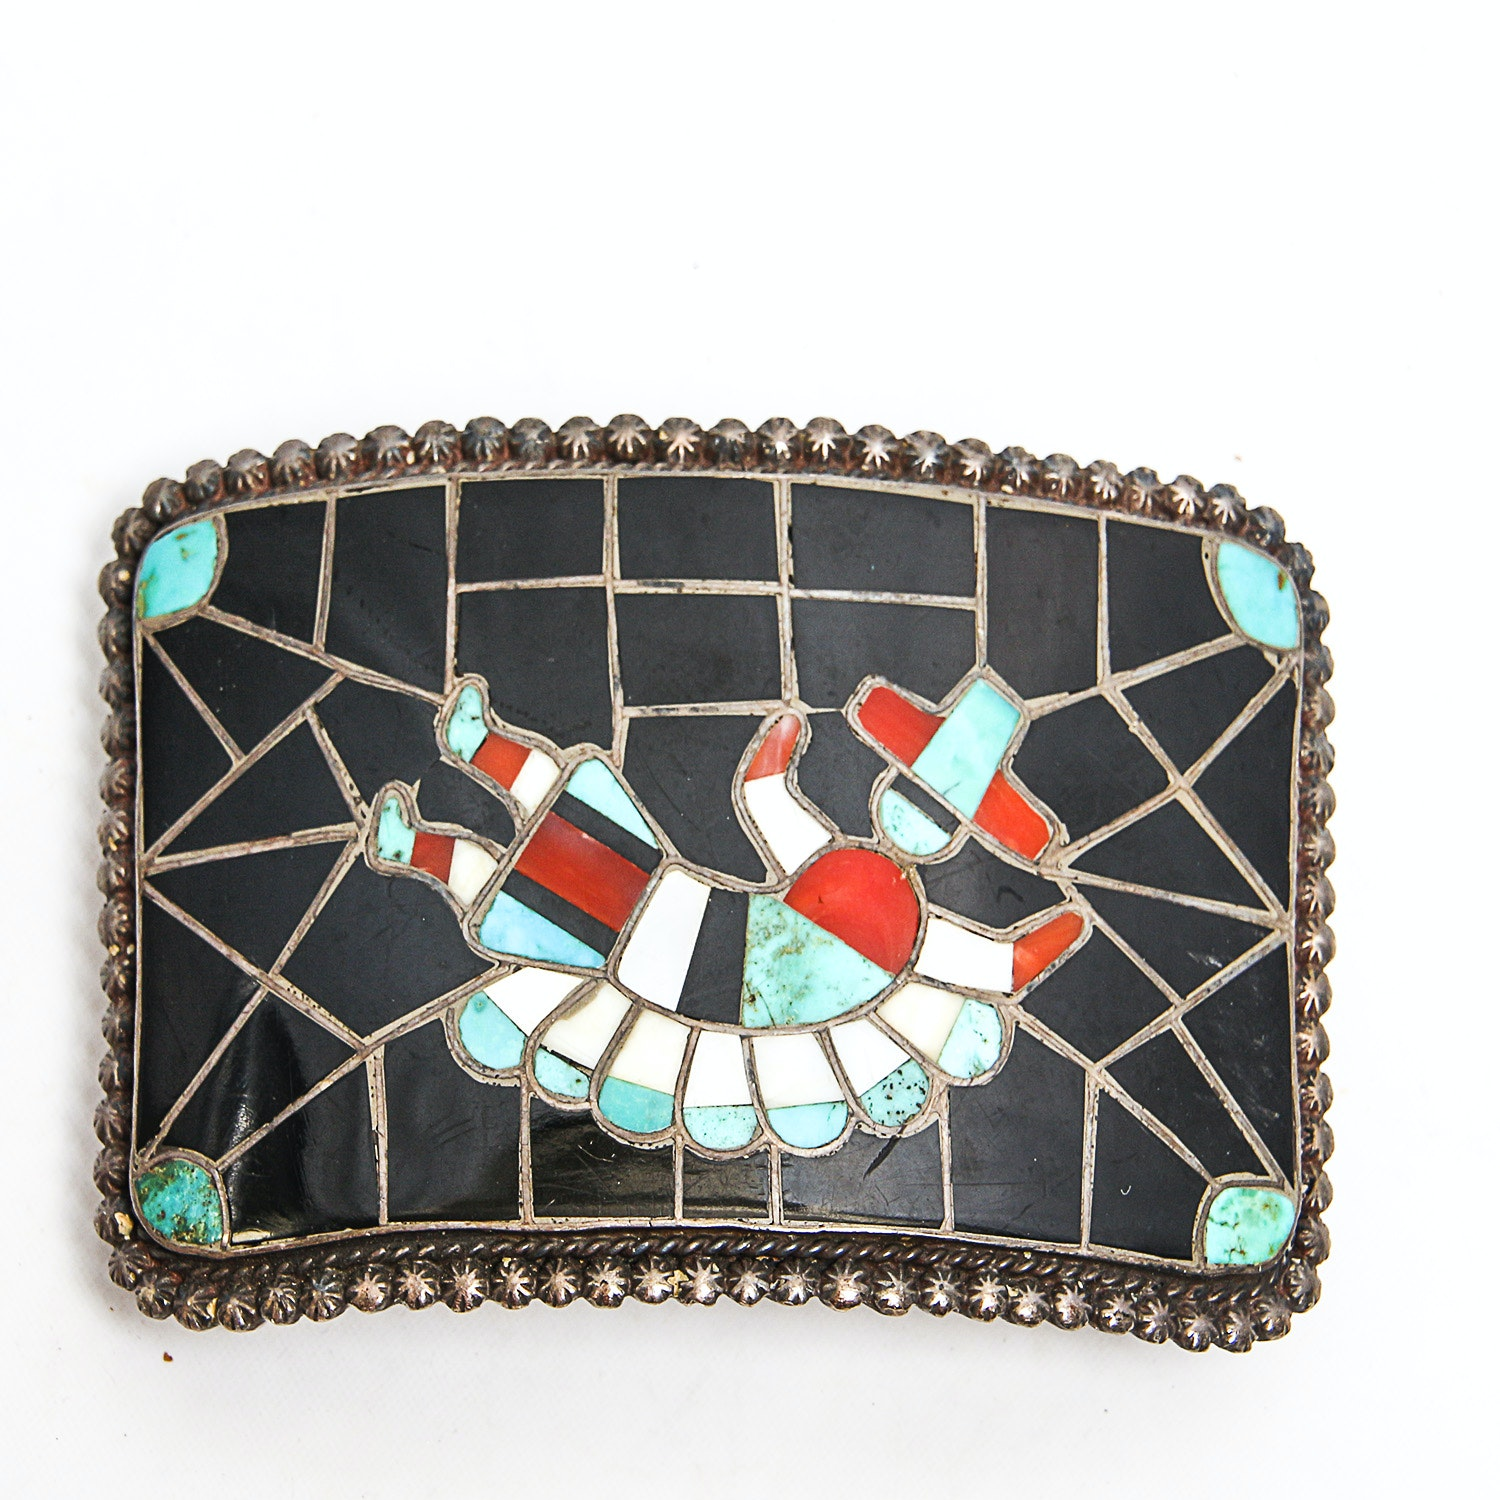 Sterling Buckle with Turquoise, Coral, Onyx and Shell Inlay